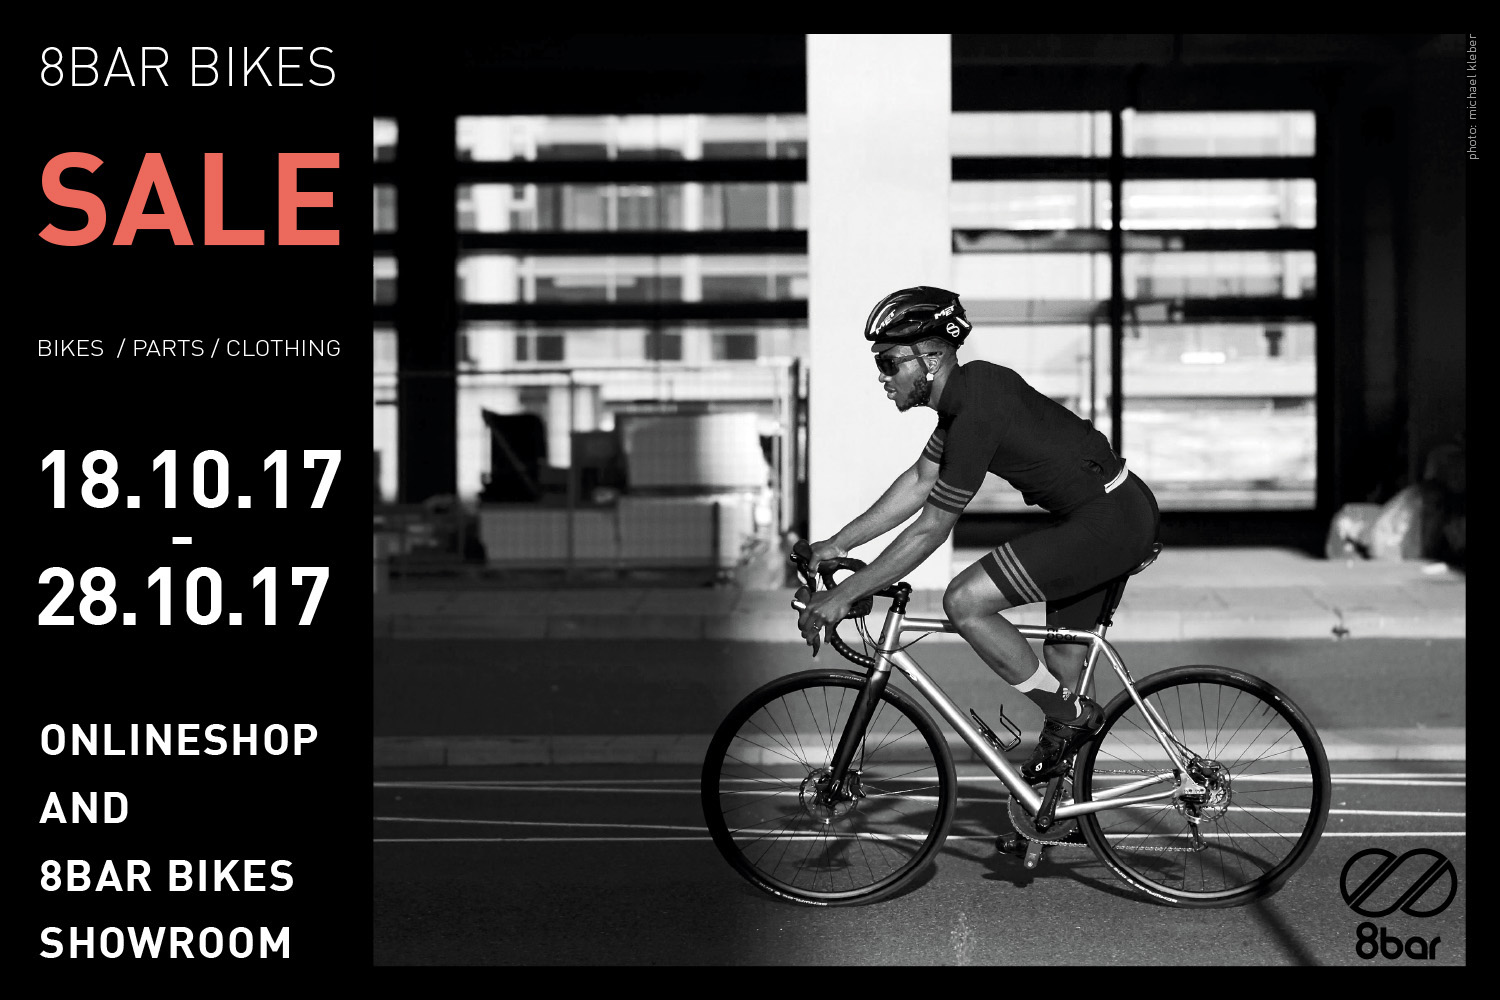 8bar bikes blog header end of season sale 2017 02 - 8bar Sale - Spare bis zu 50%!